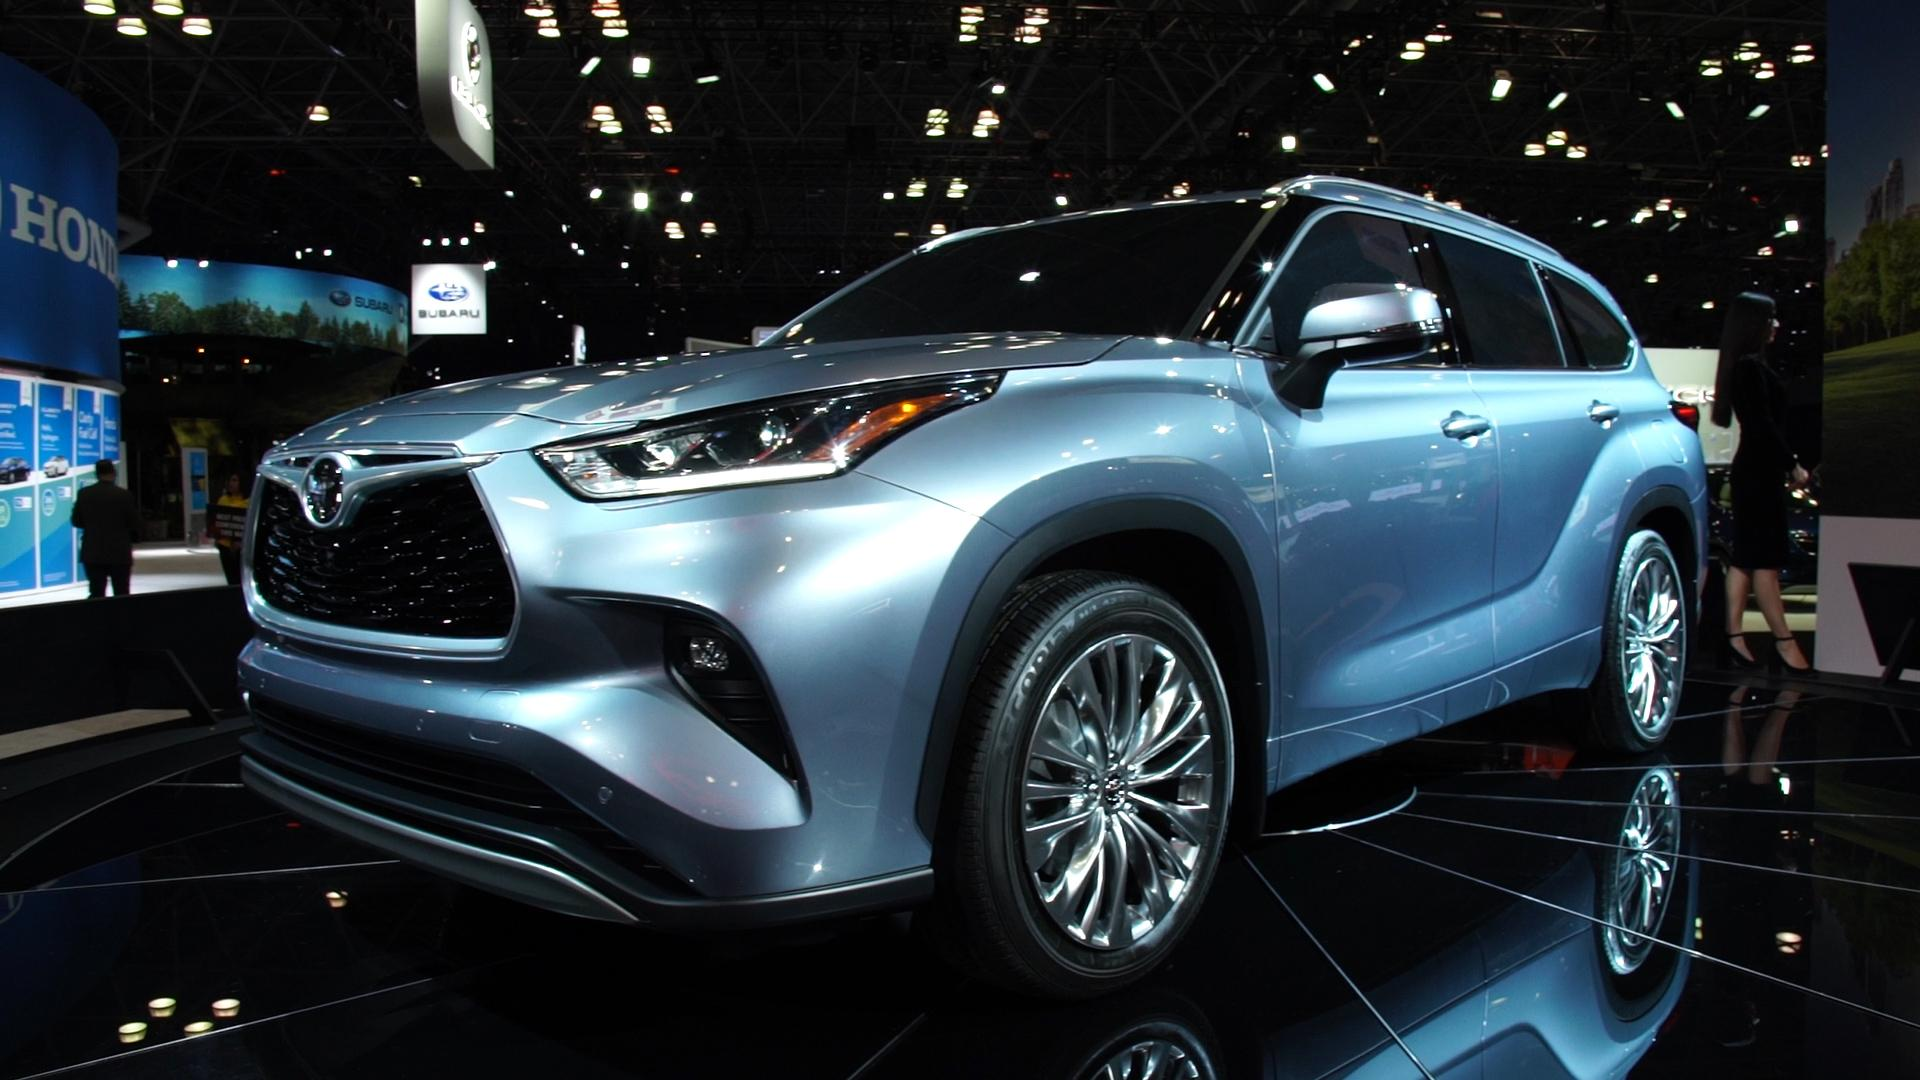 46 Great Pictures Of 2020 Toyota Highlander First Drive for Pictures Of 2020 Toyota Highlander